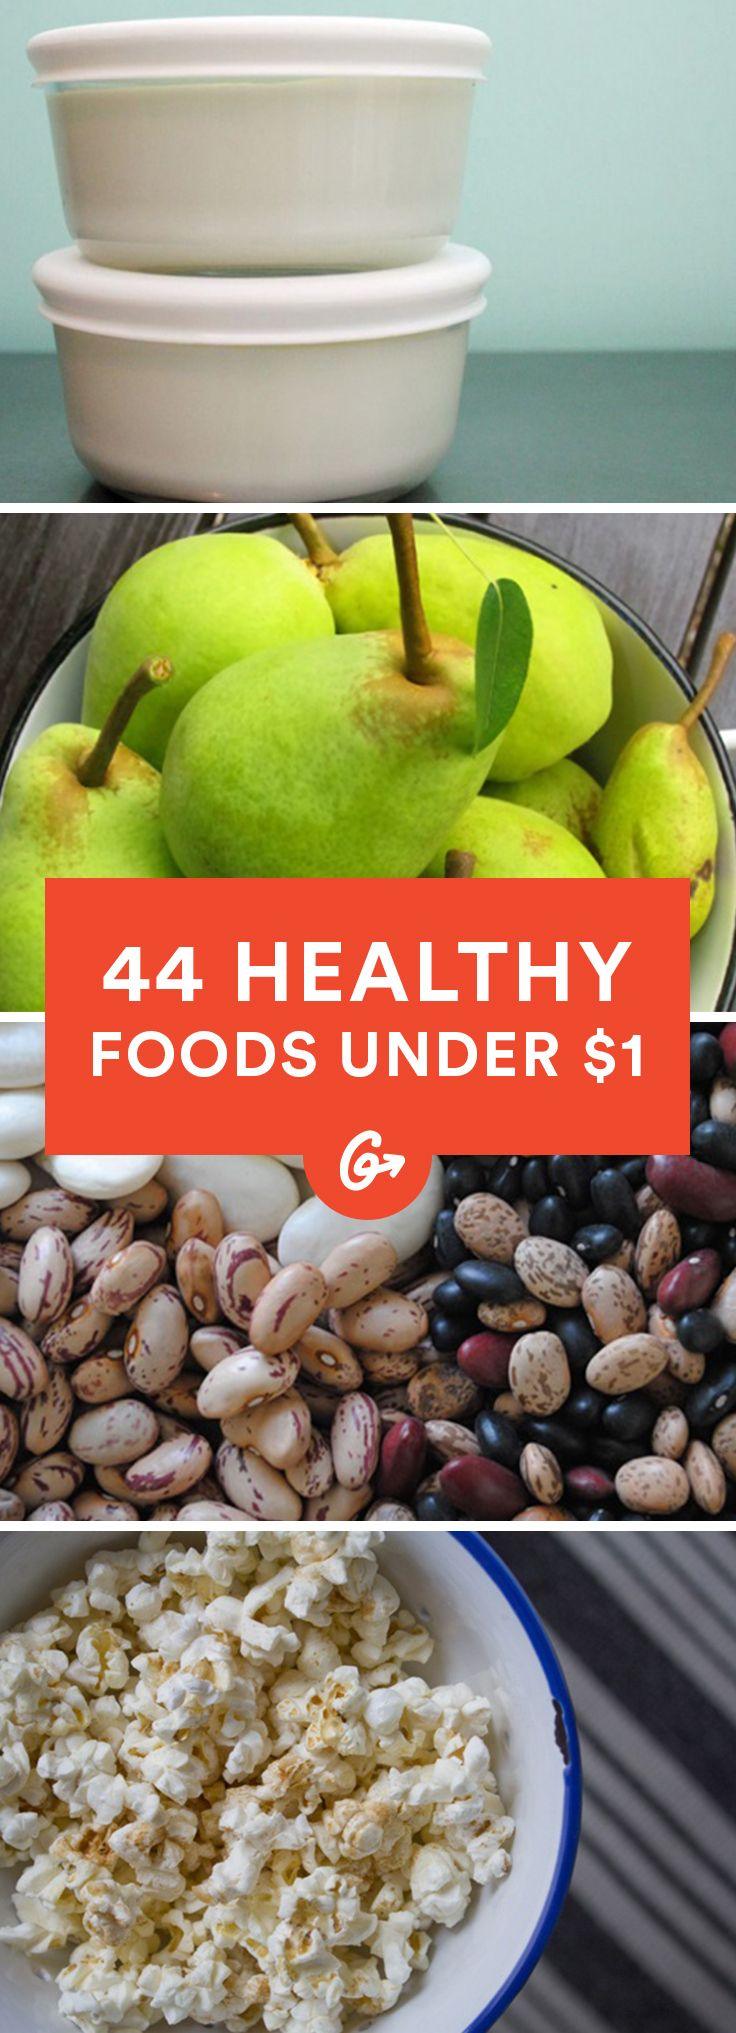 44 Healthy Foods Under $1 #cheap #healthy #foods http://greatist.com/health/44-healthy-foods-under-1